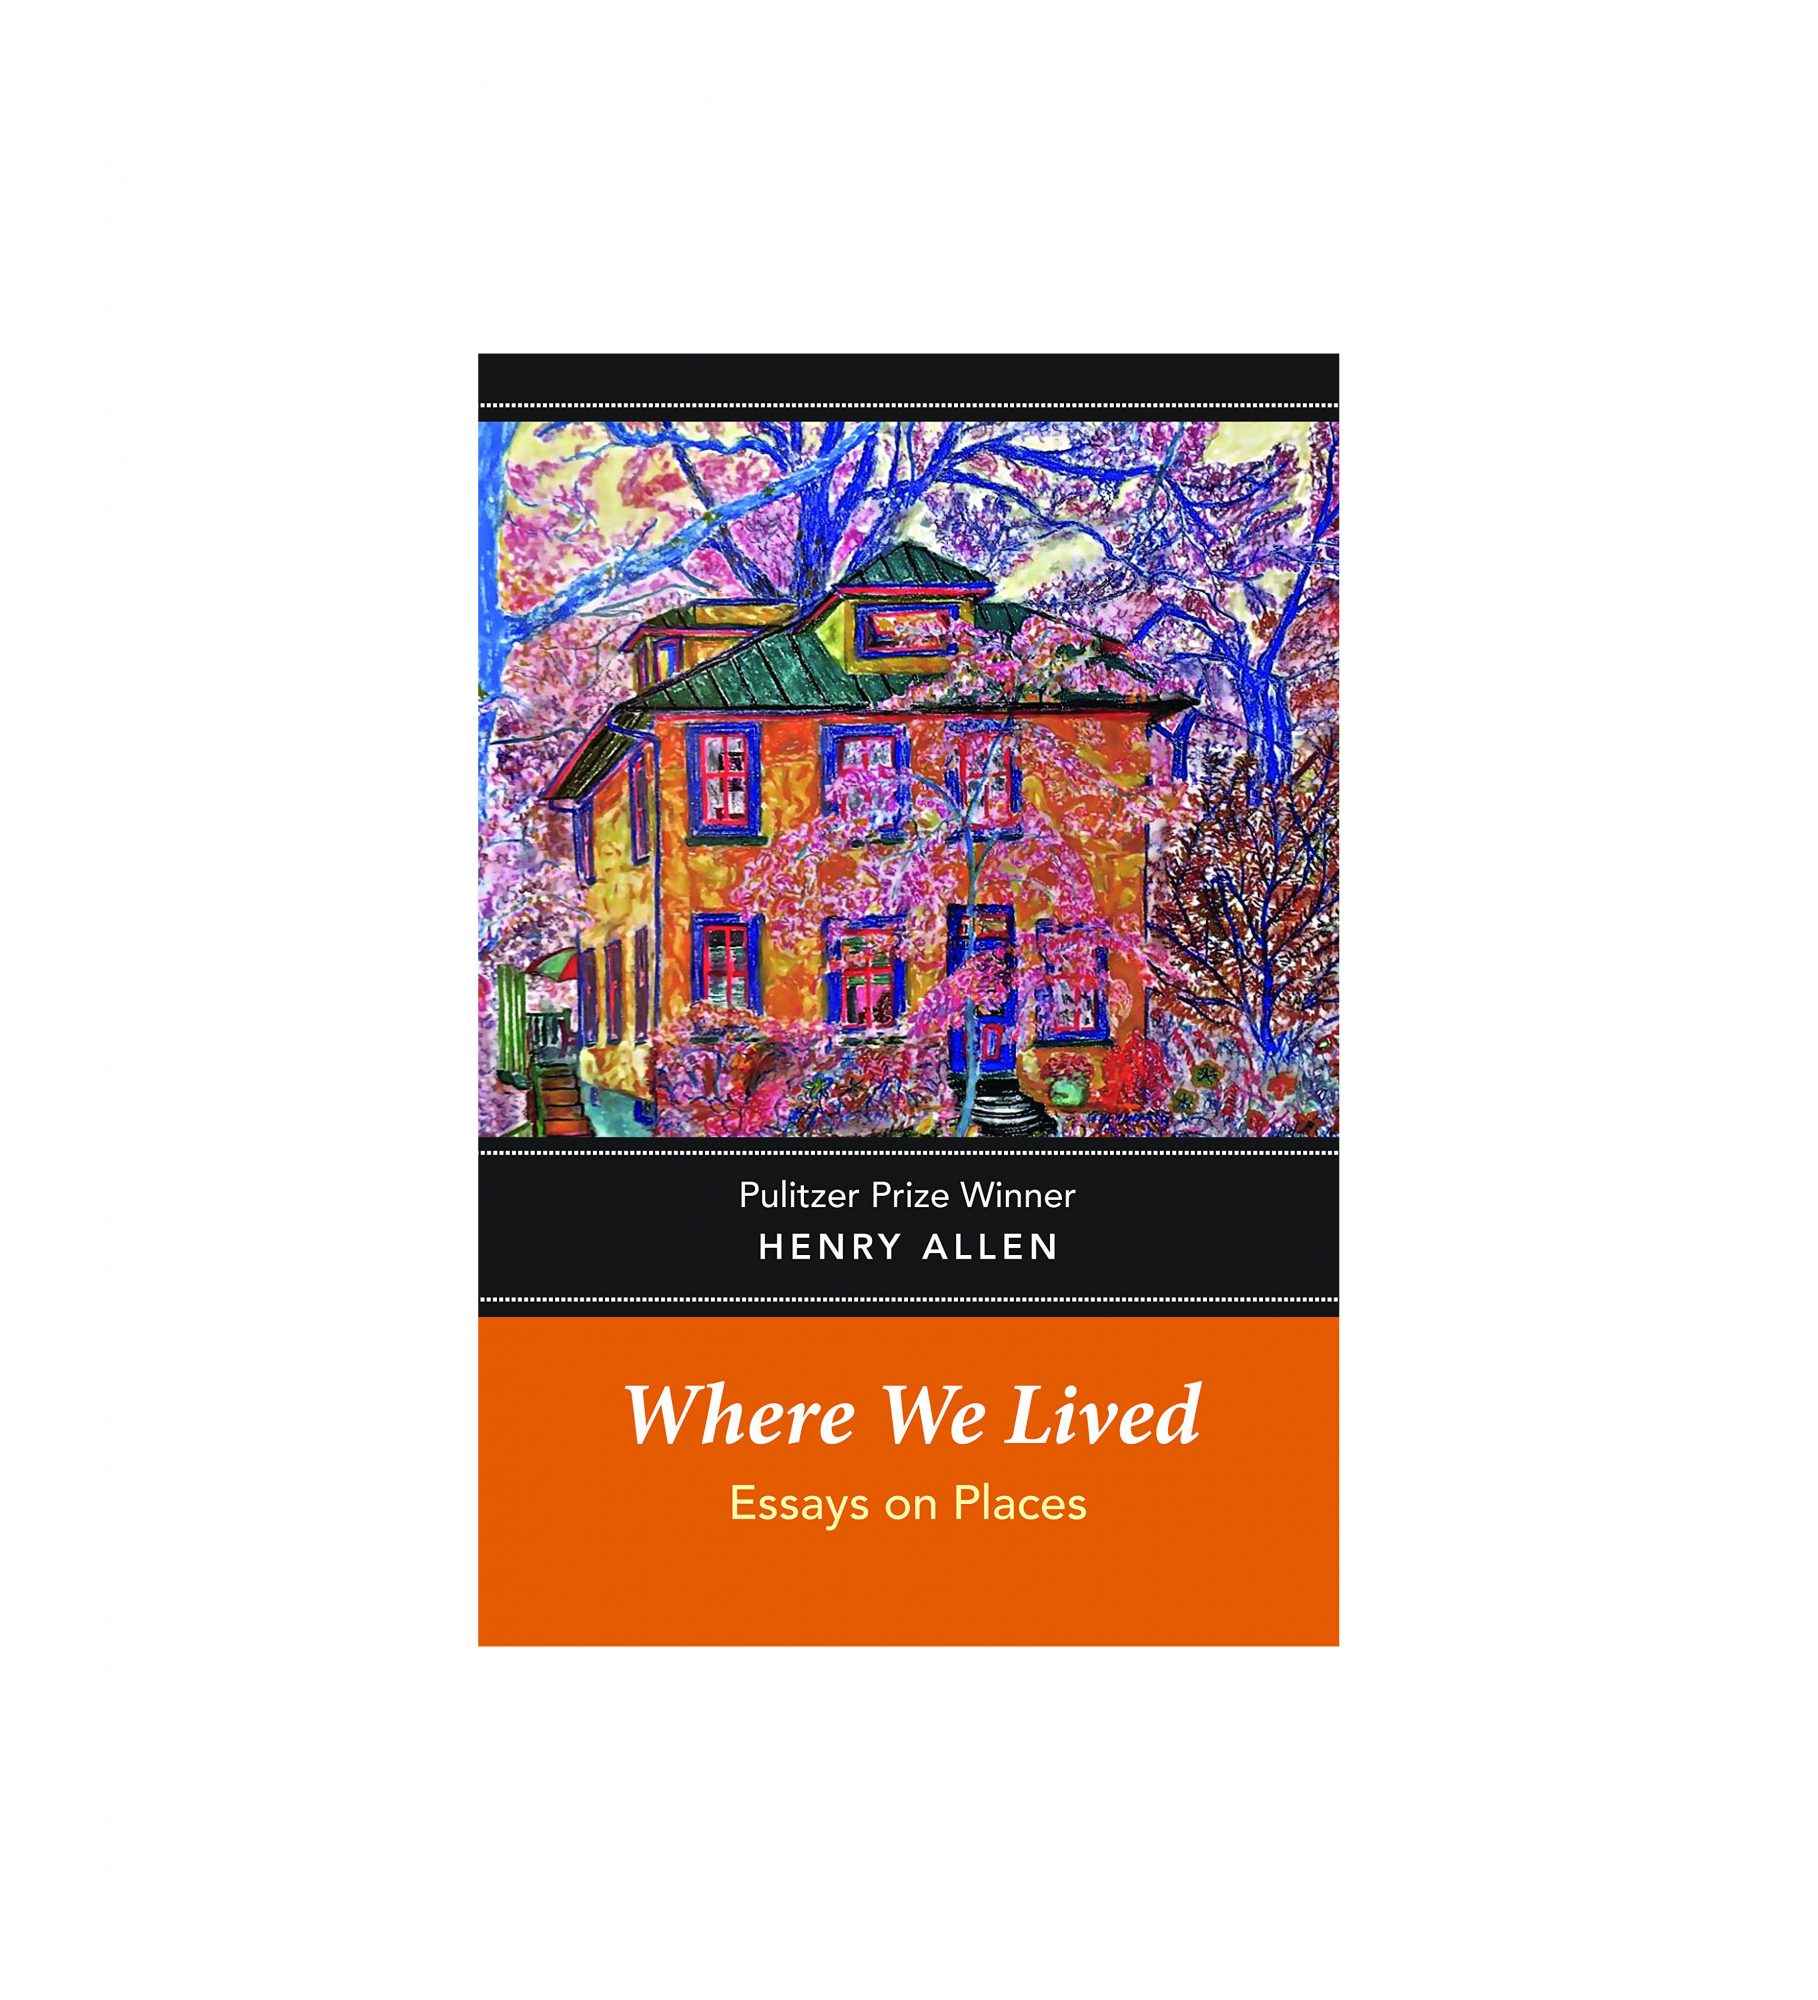 Where We Lived, by Henry Allen